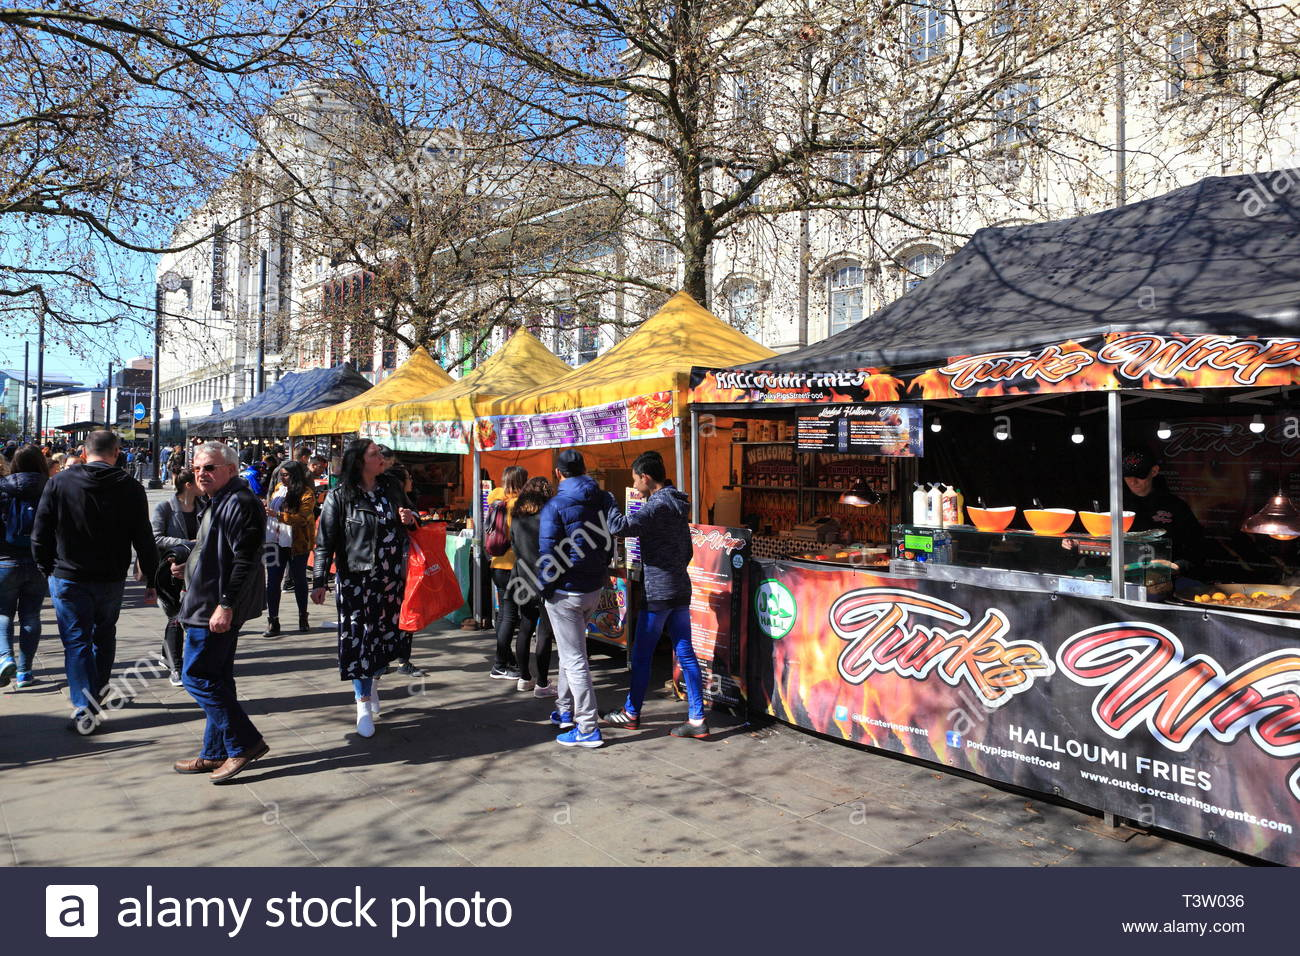 Outdoor food market stalls with public around in view at Manchester UK - Stock Image